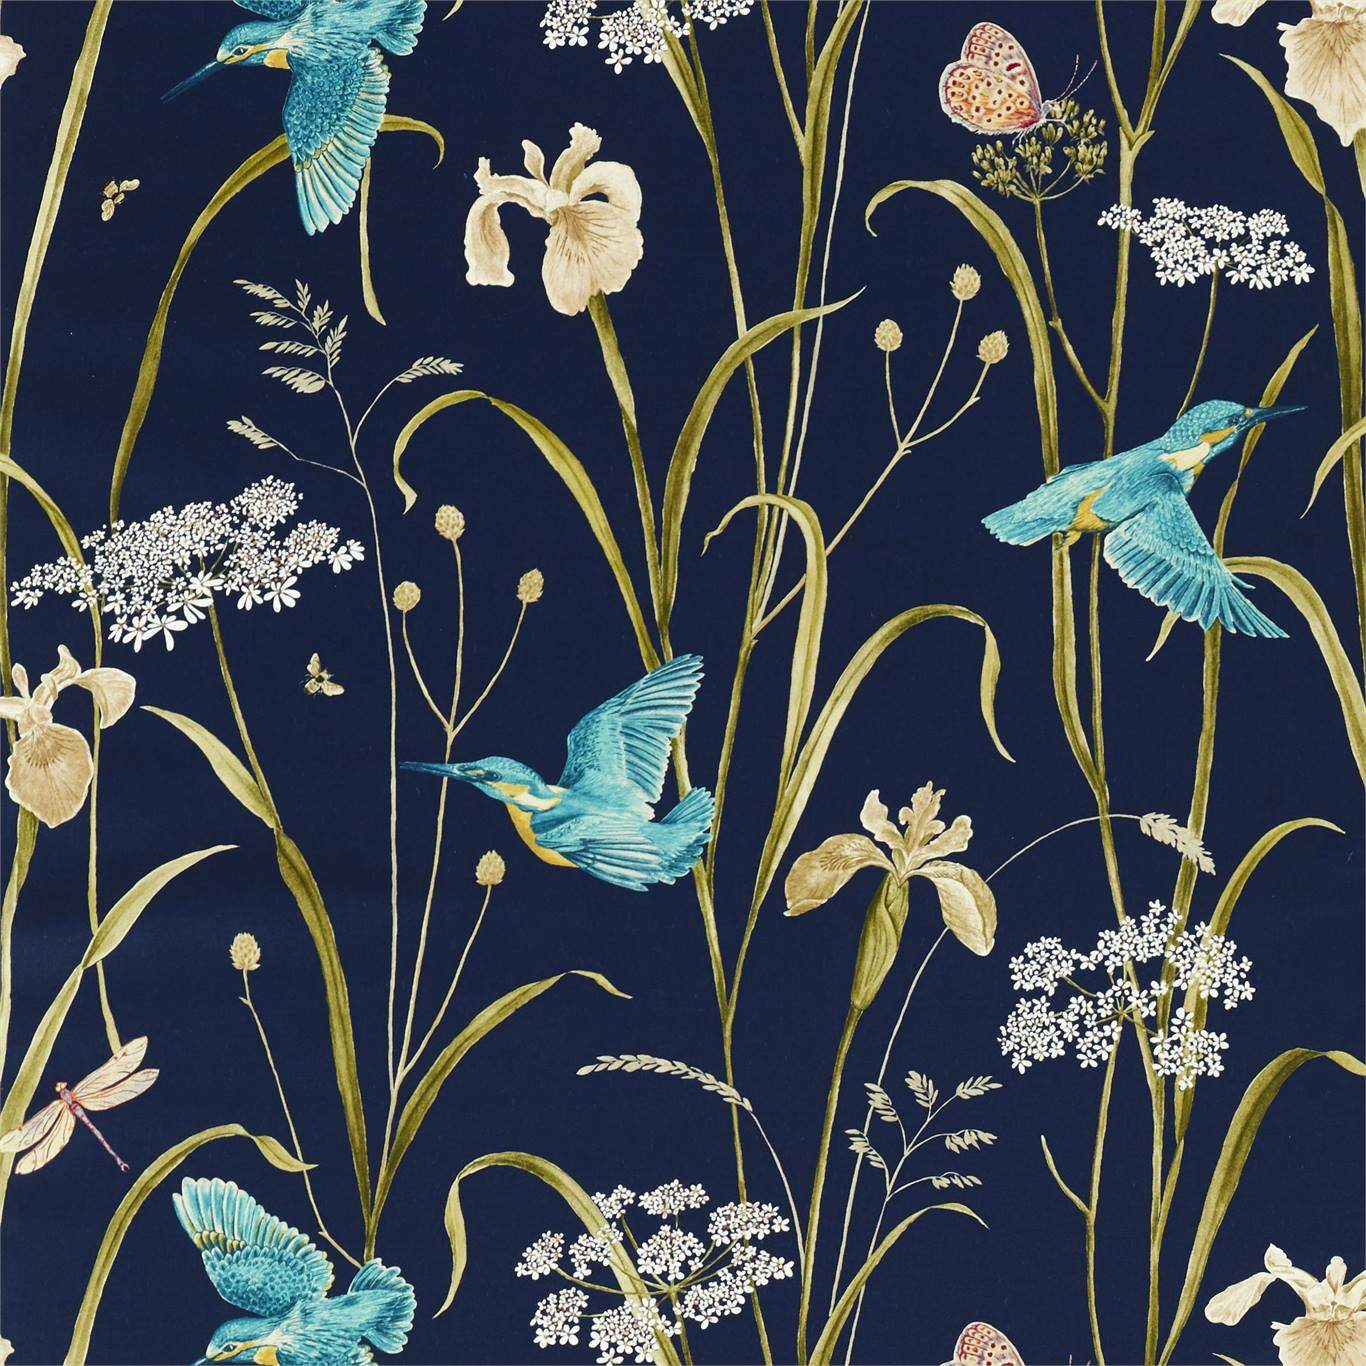 DNTF226733 Collection - National Trust Fabric